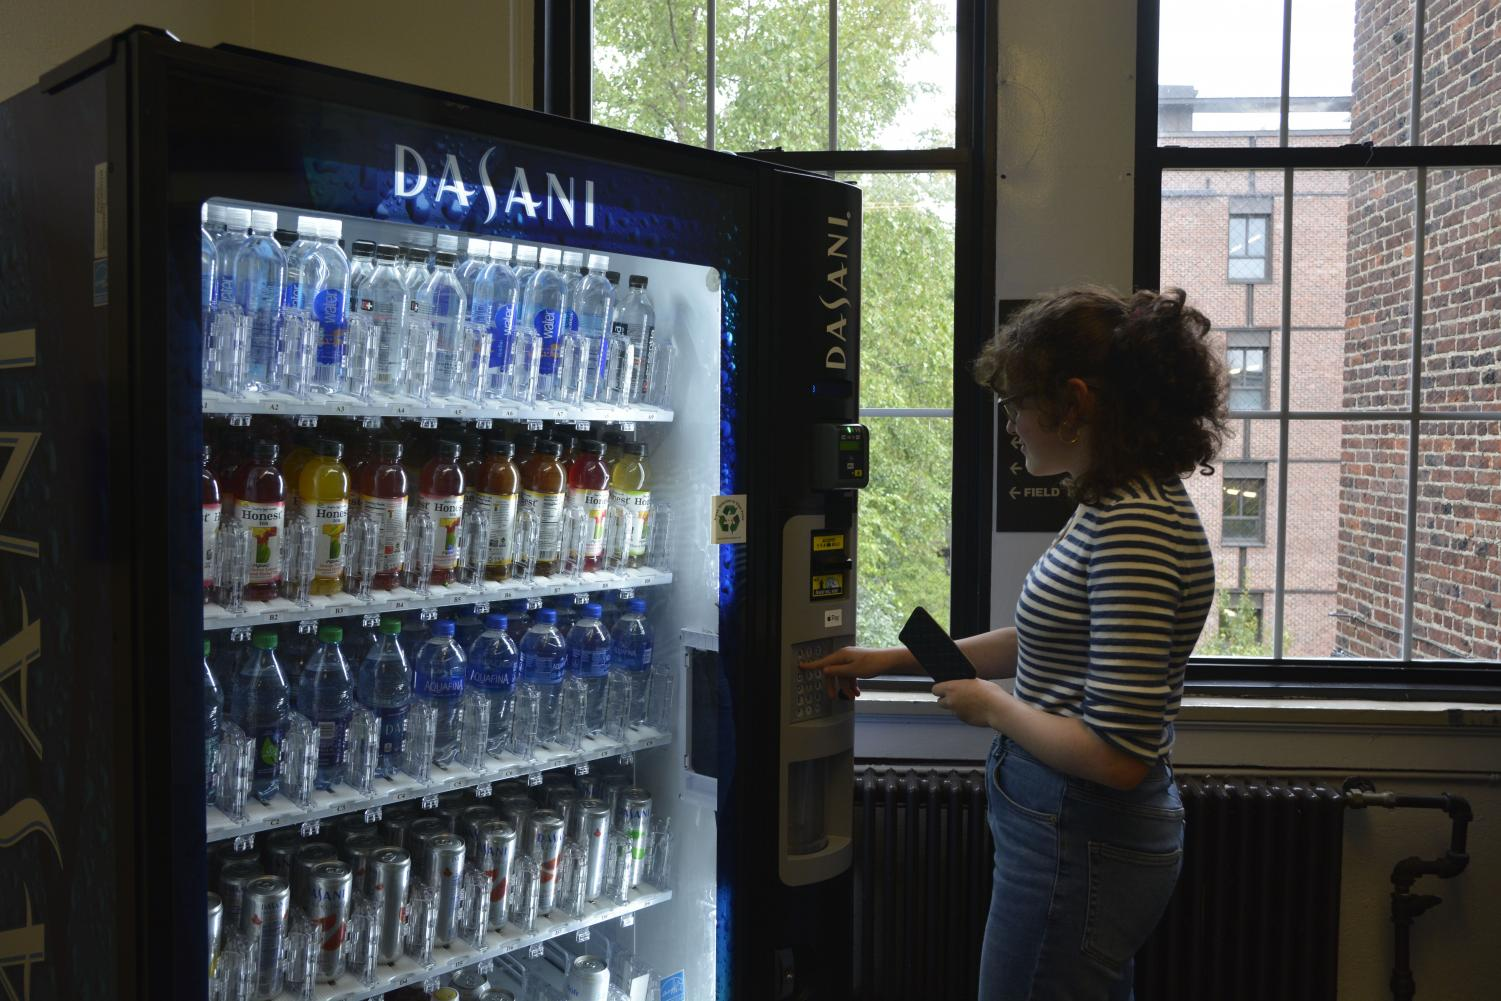 Junior Sasha Khazhinsky contemplates what to buy from a new vending machine.